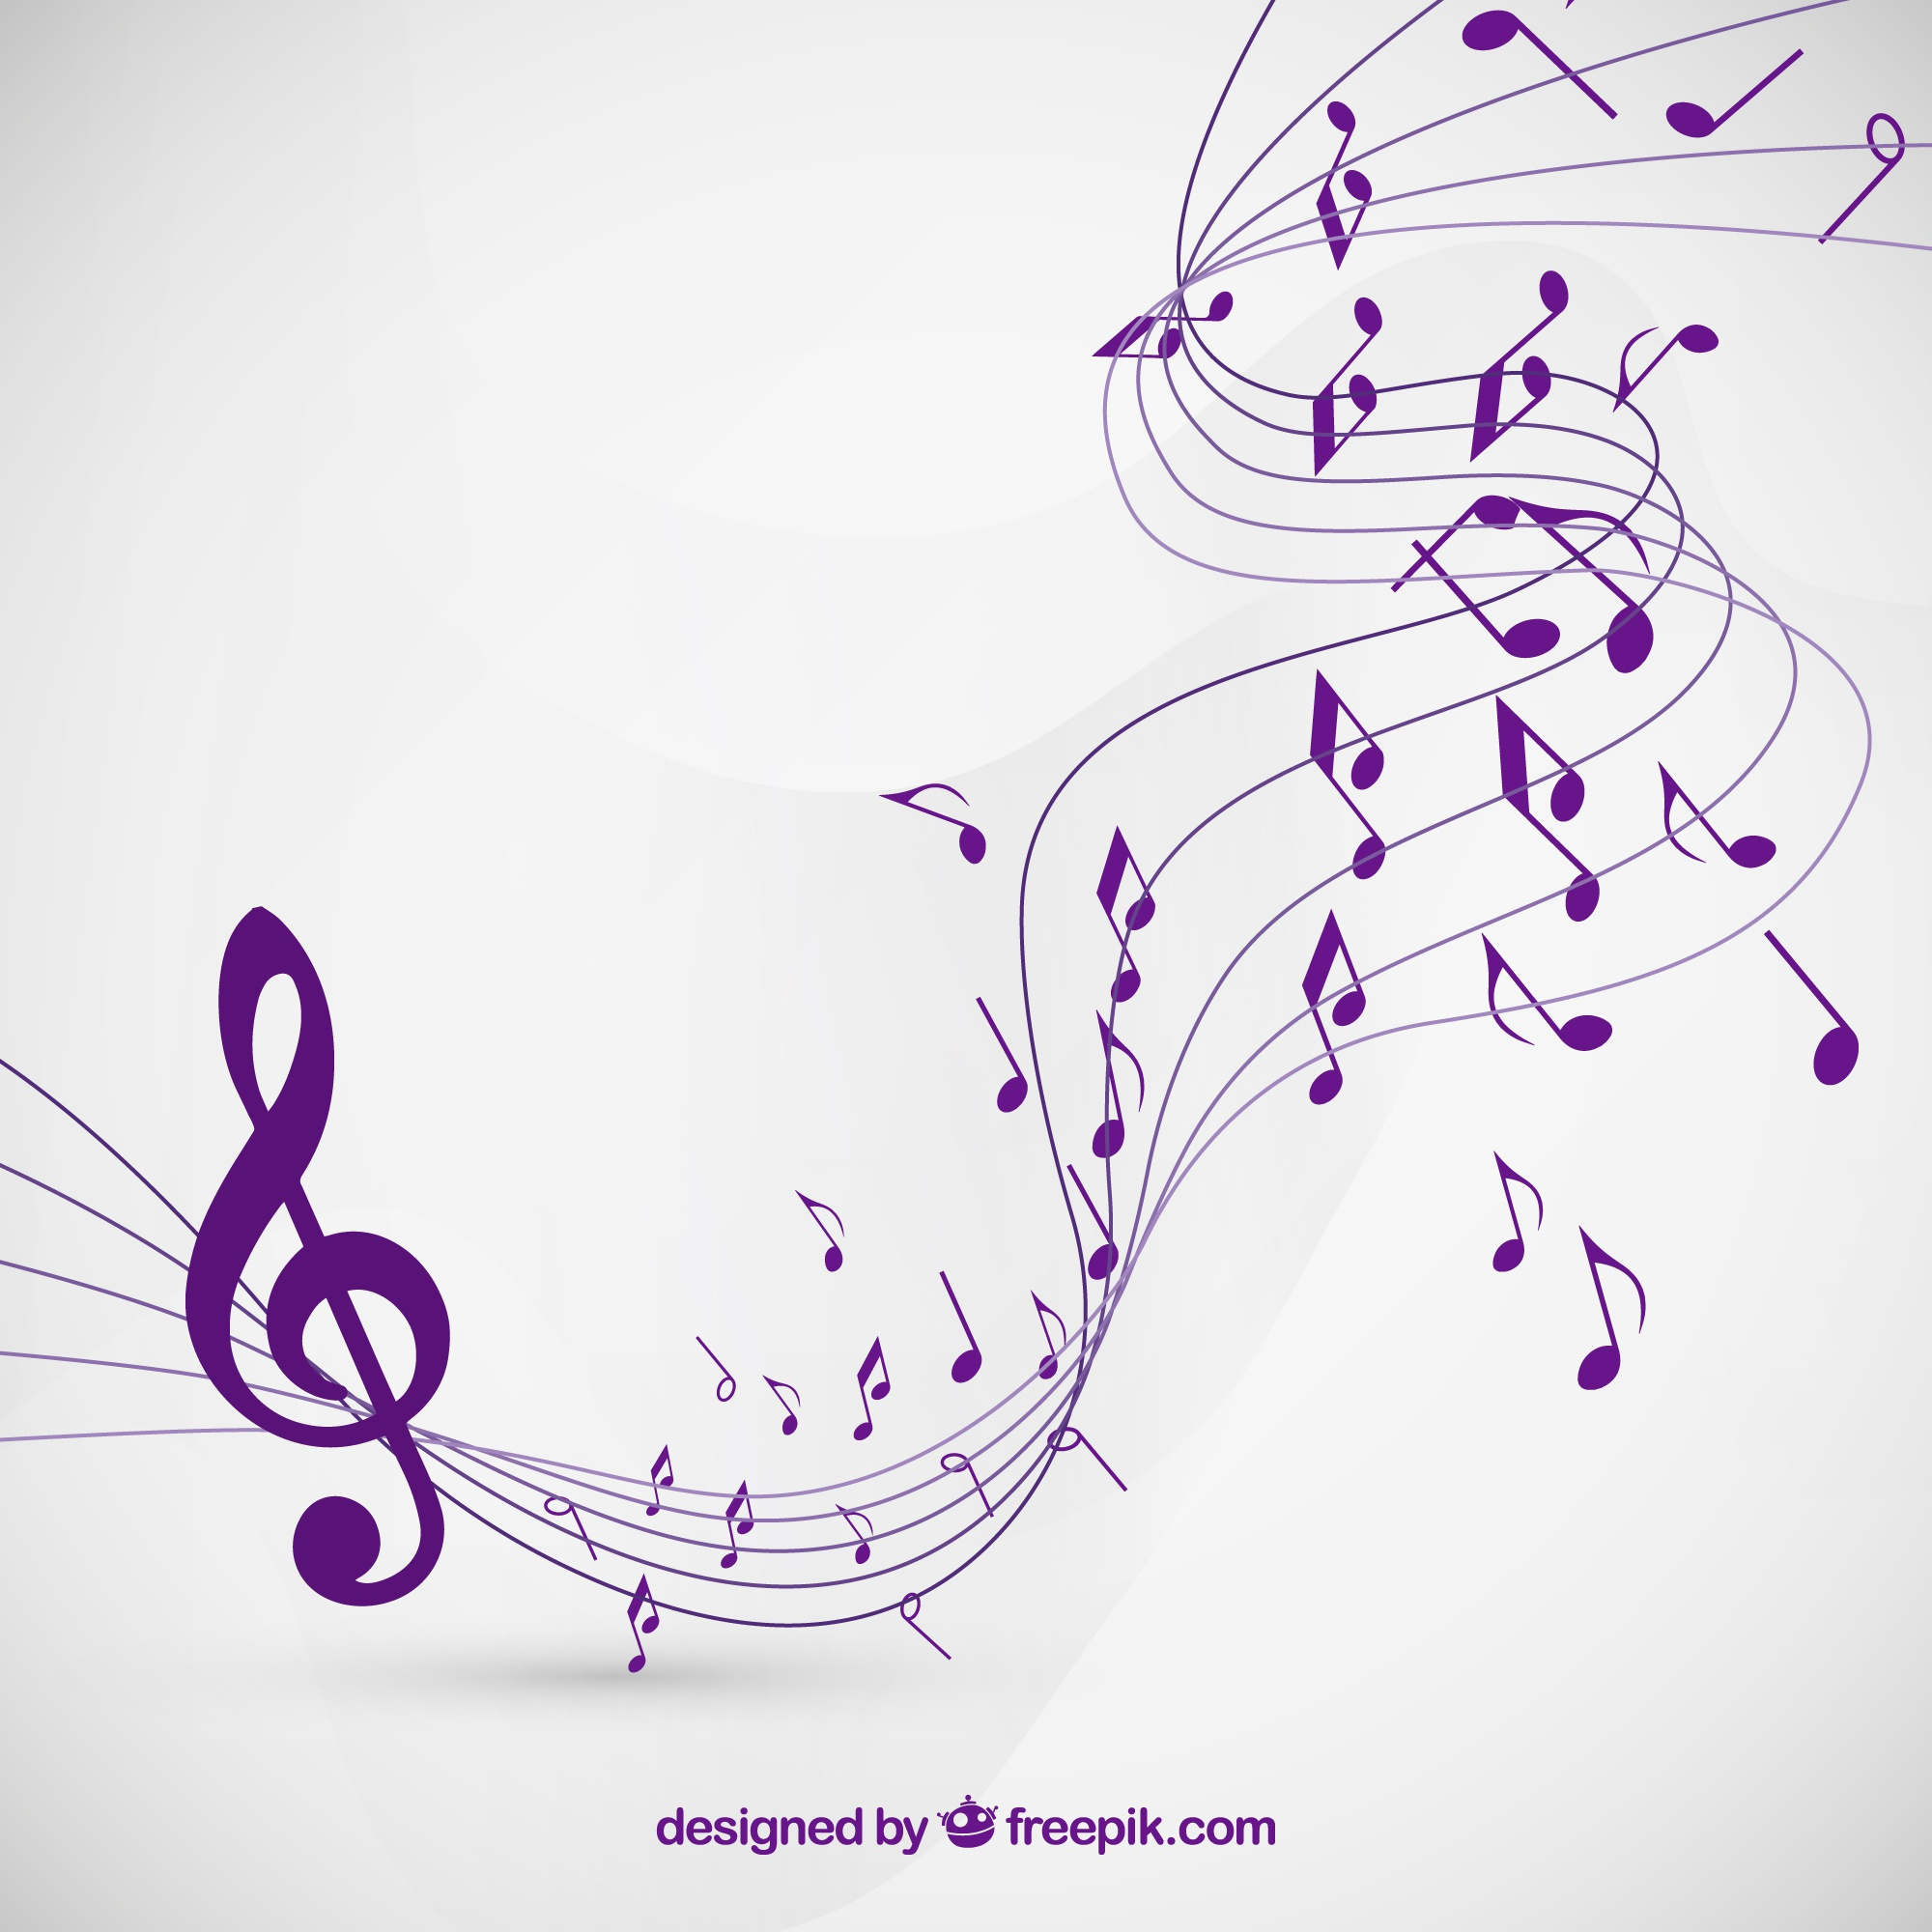 Musical notes background in purple color